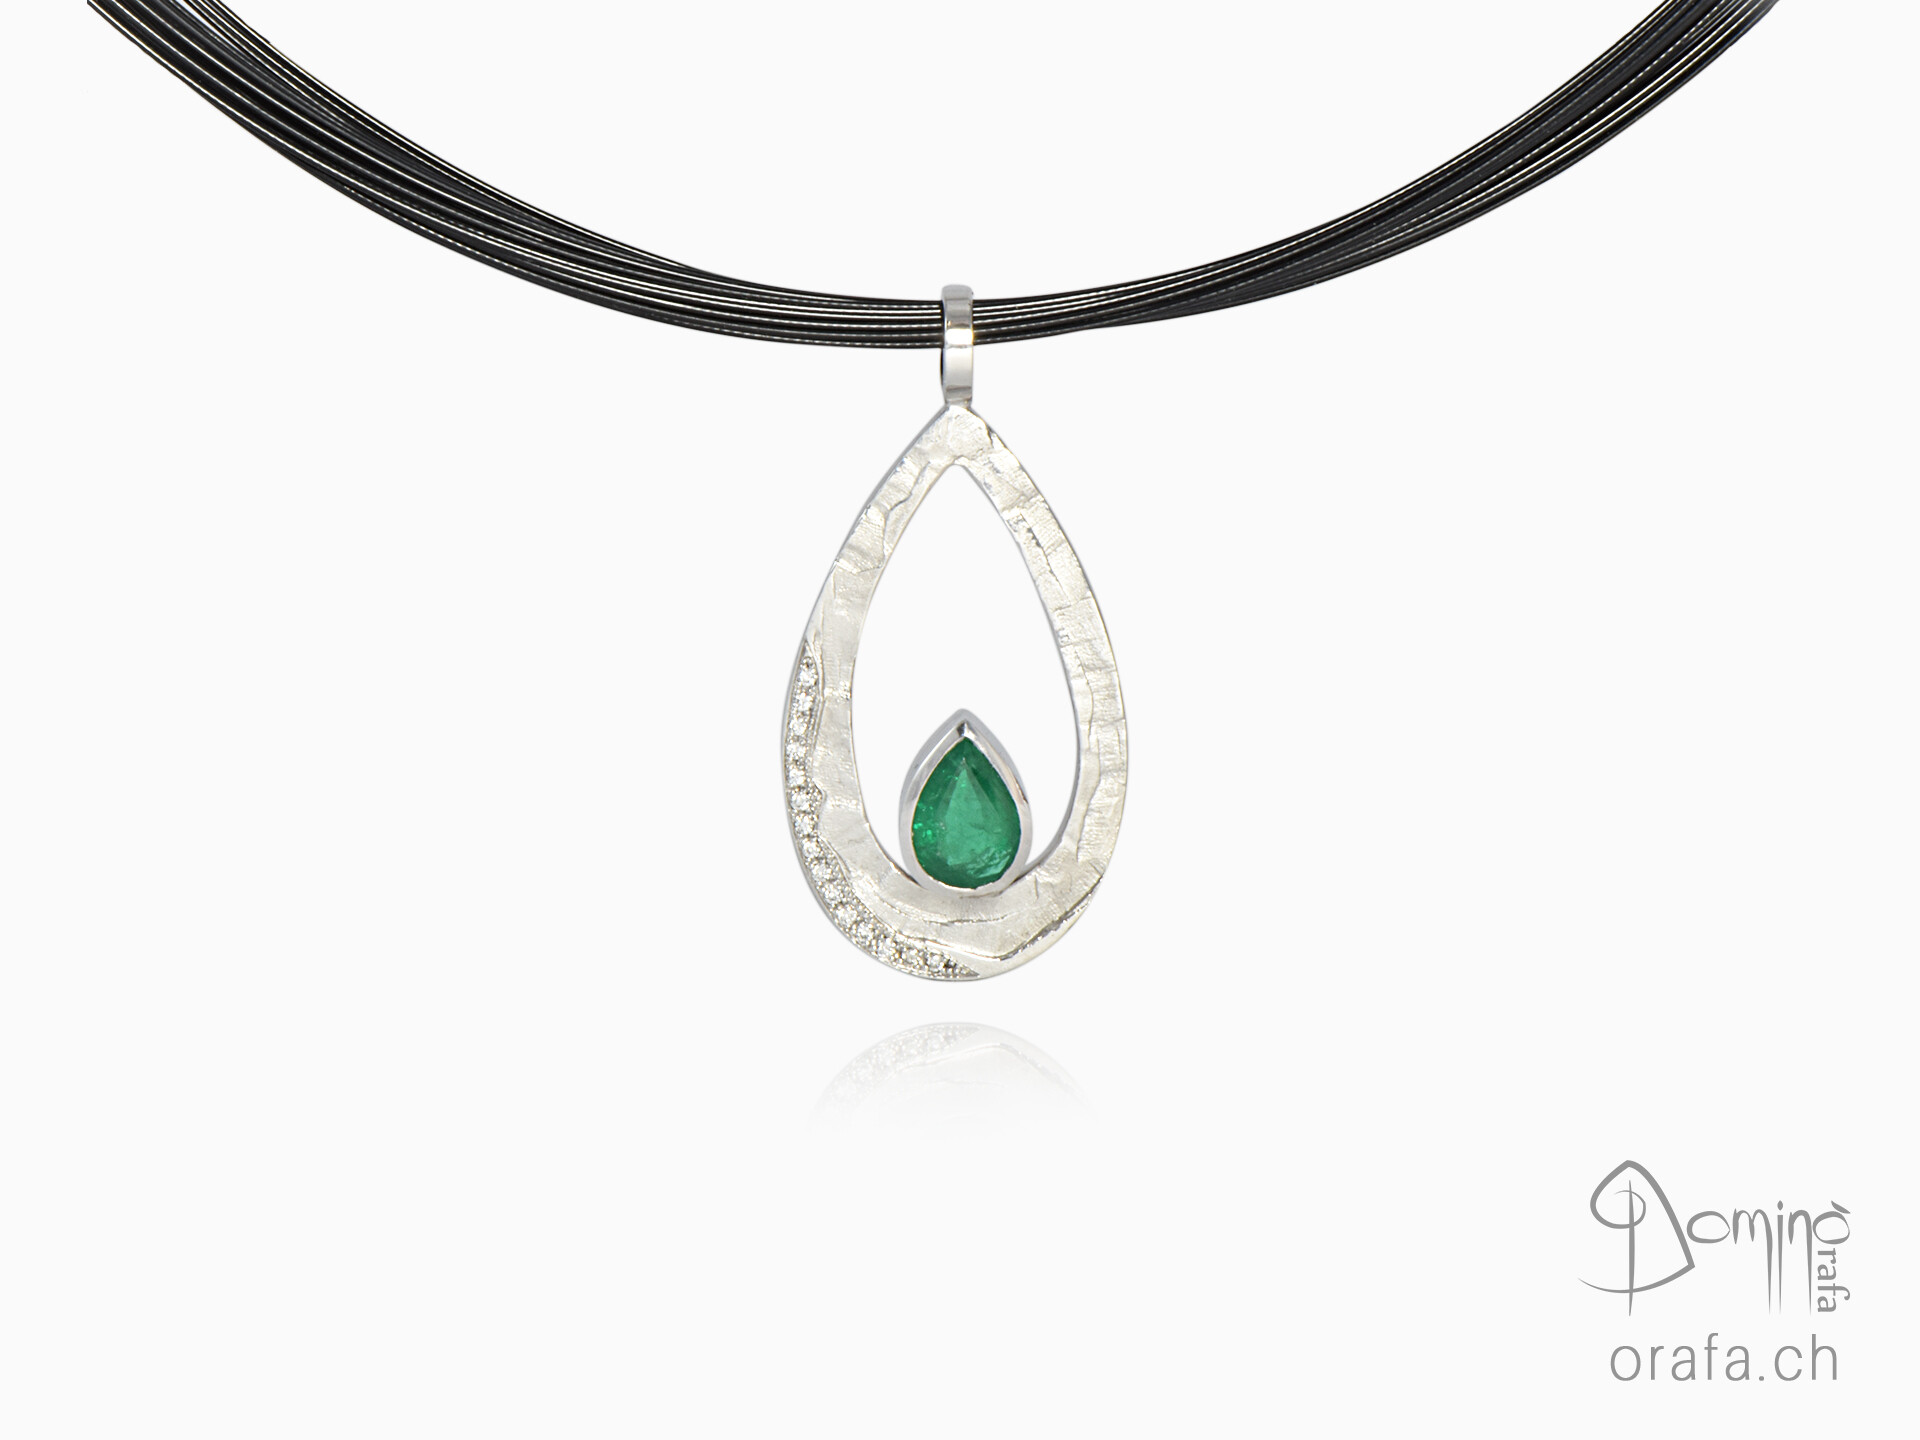 Sentiero pendant with diamonds and emerald